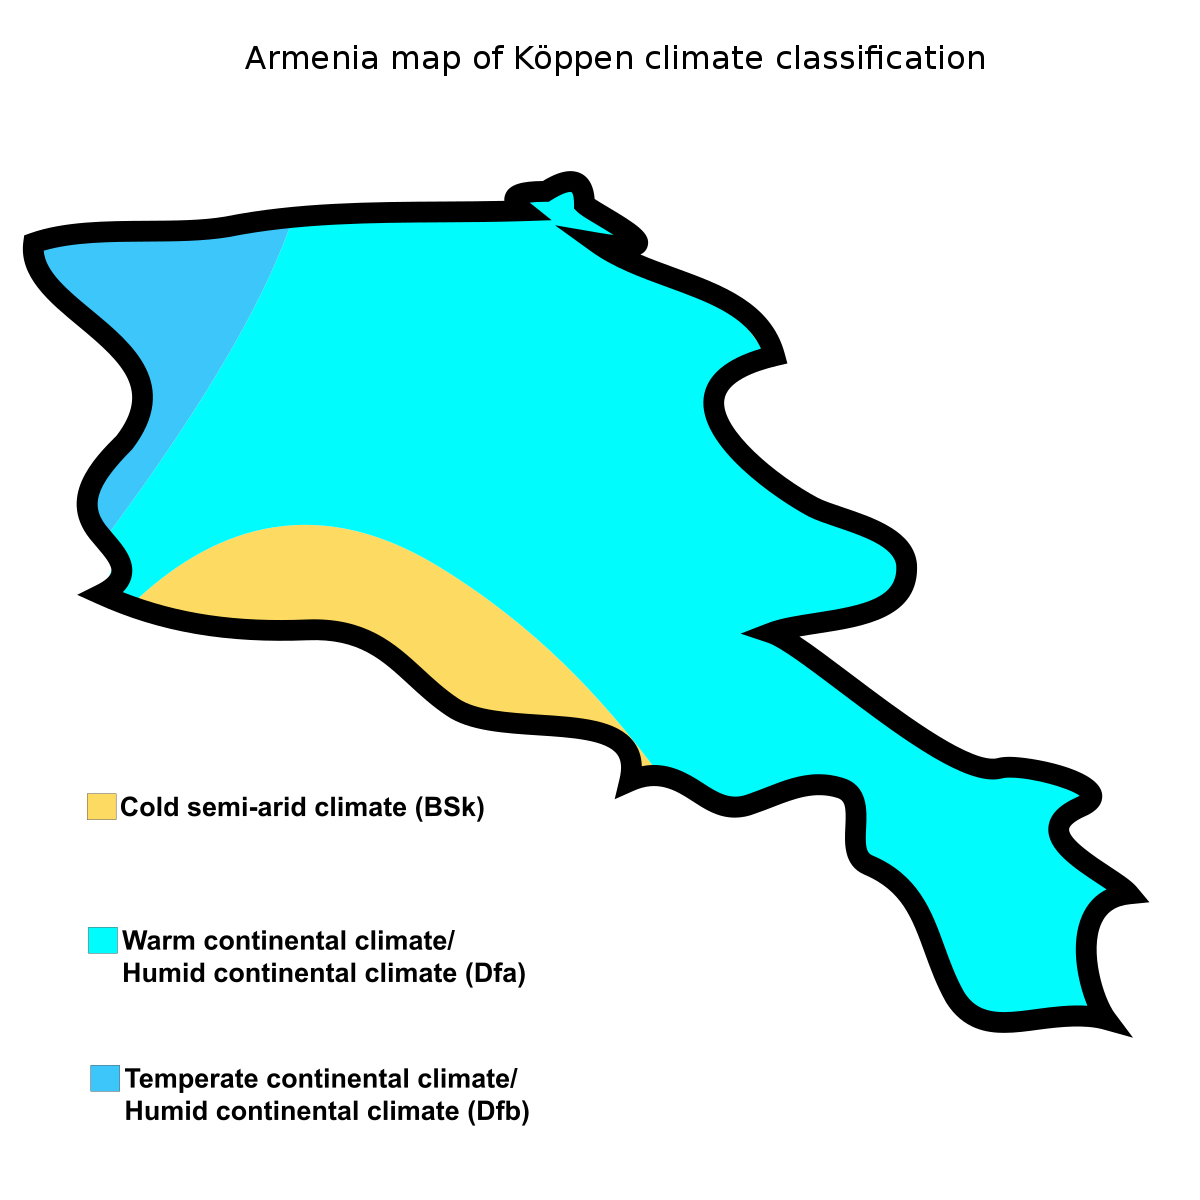 Evaporation clipart physical change. Geography of armenia wikipedia